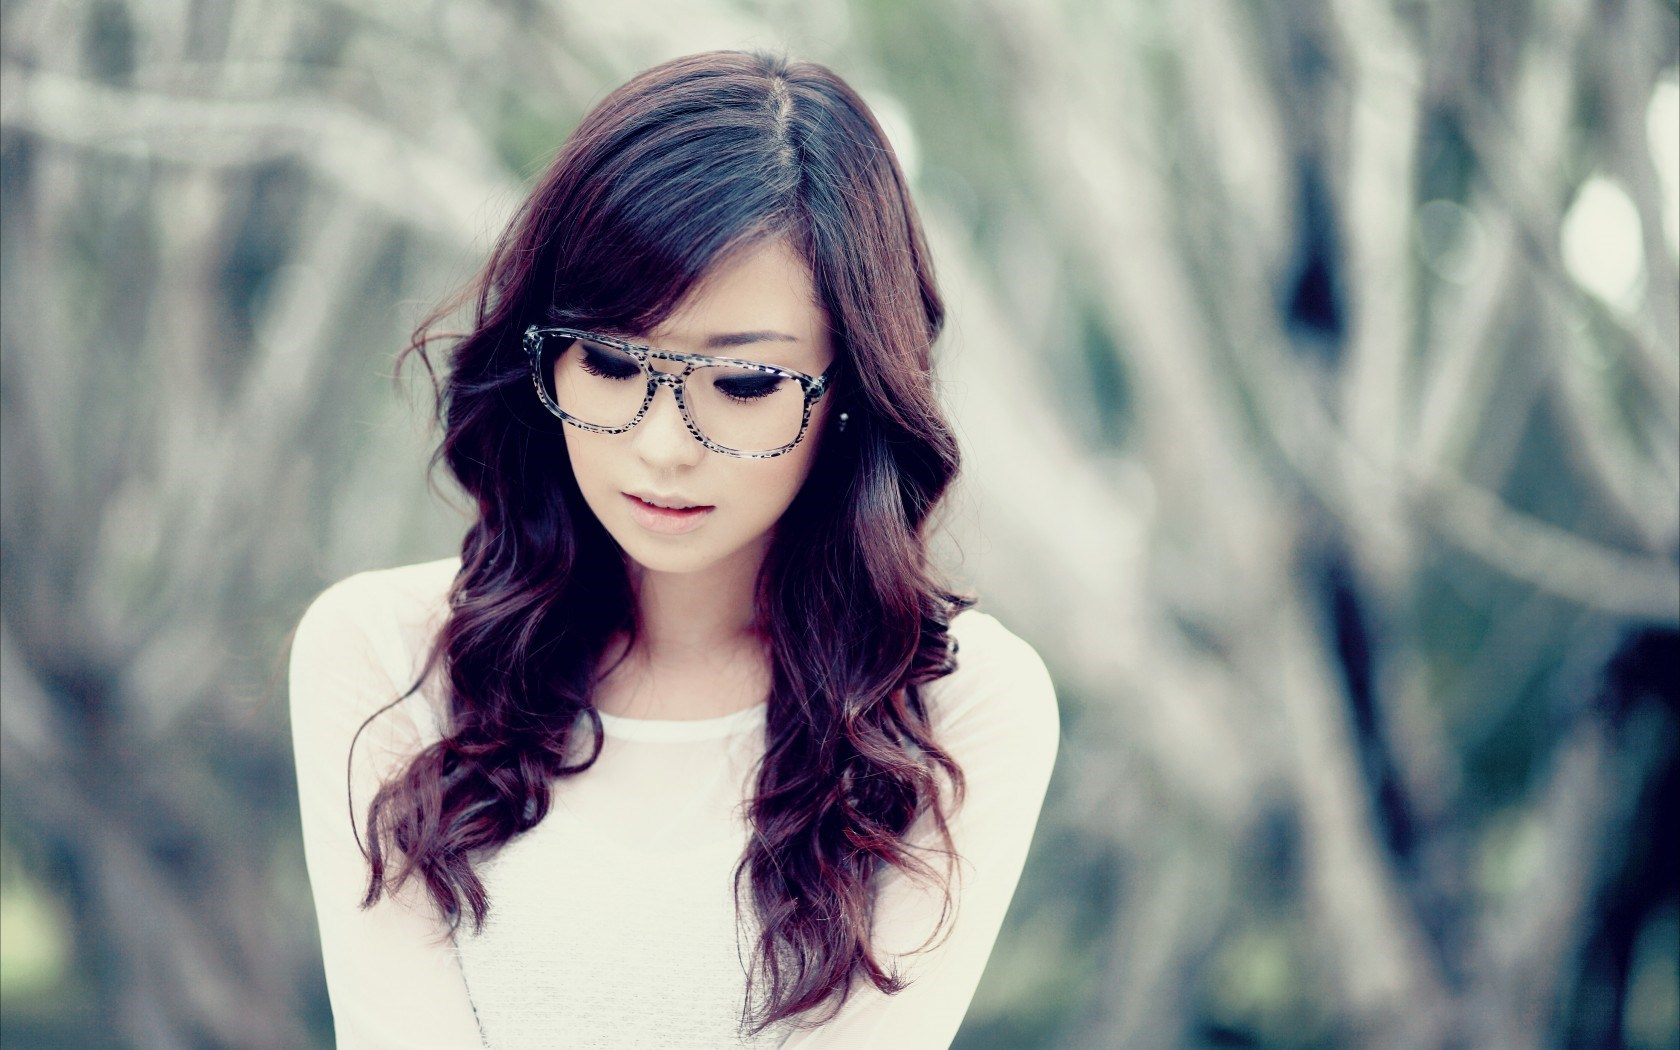 Cute Girl Asian Model Glasses